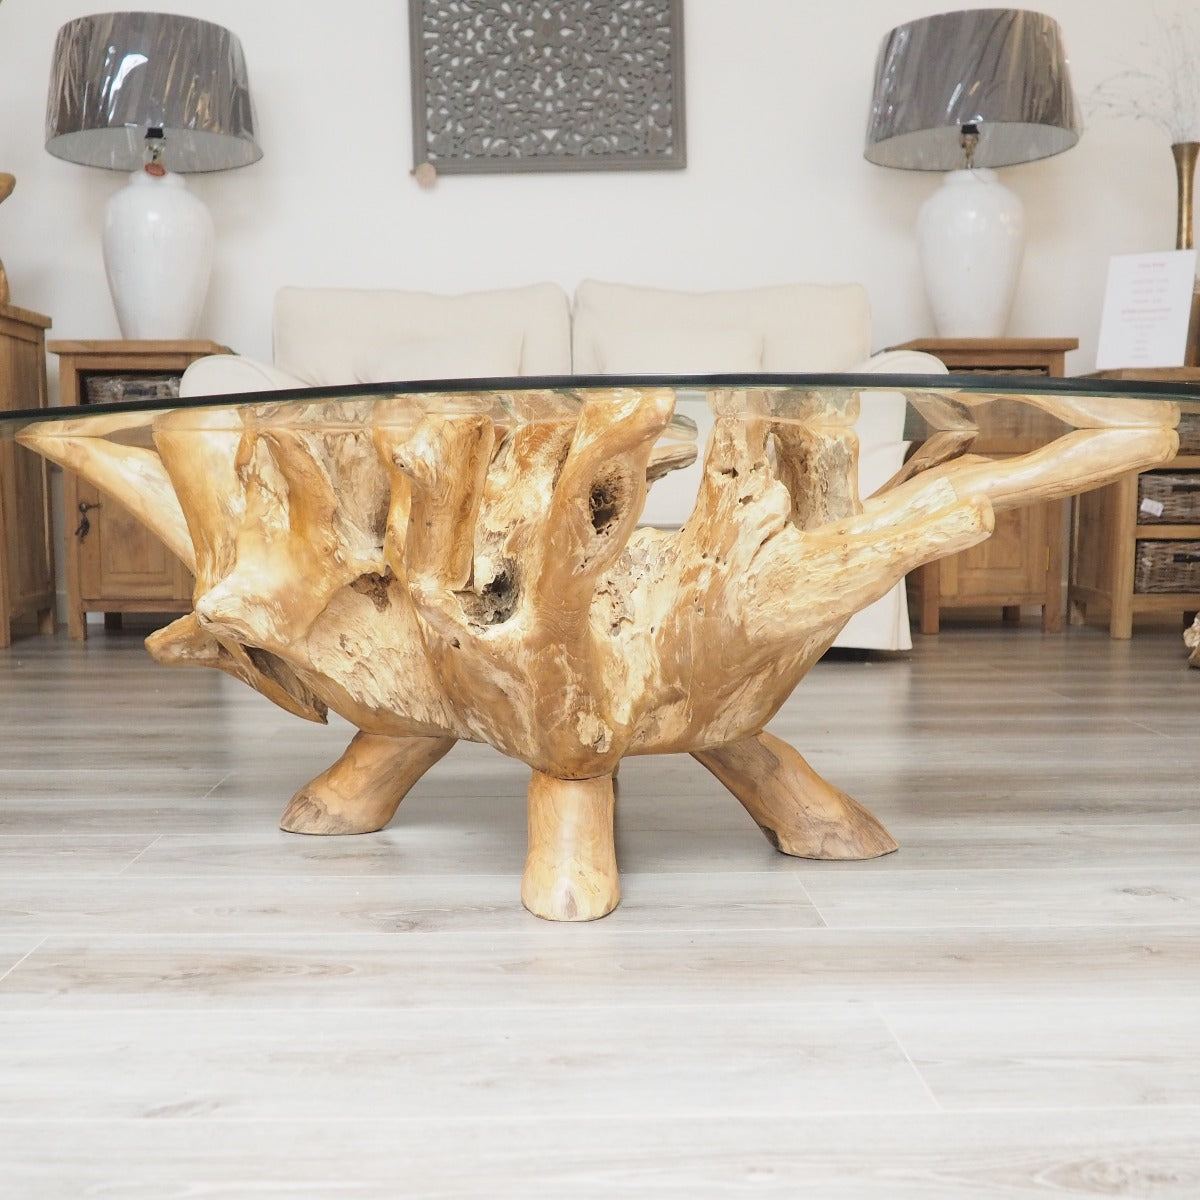 Teak Root Oval Coffee Table - 150x100cm – Rustic House ...